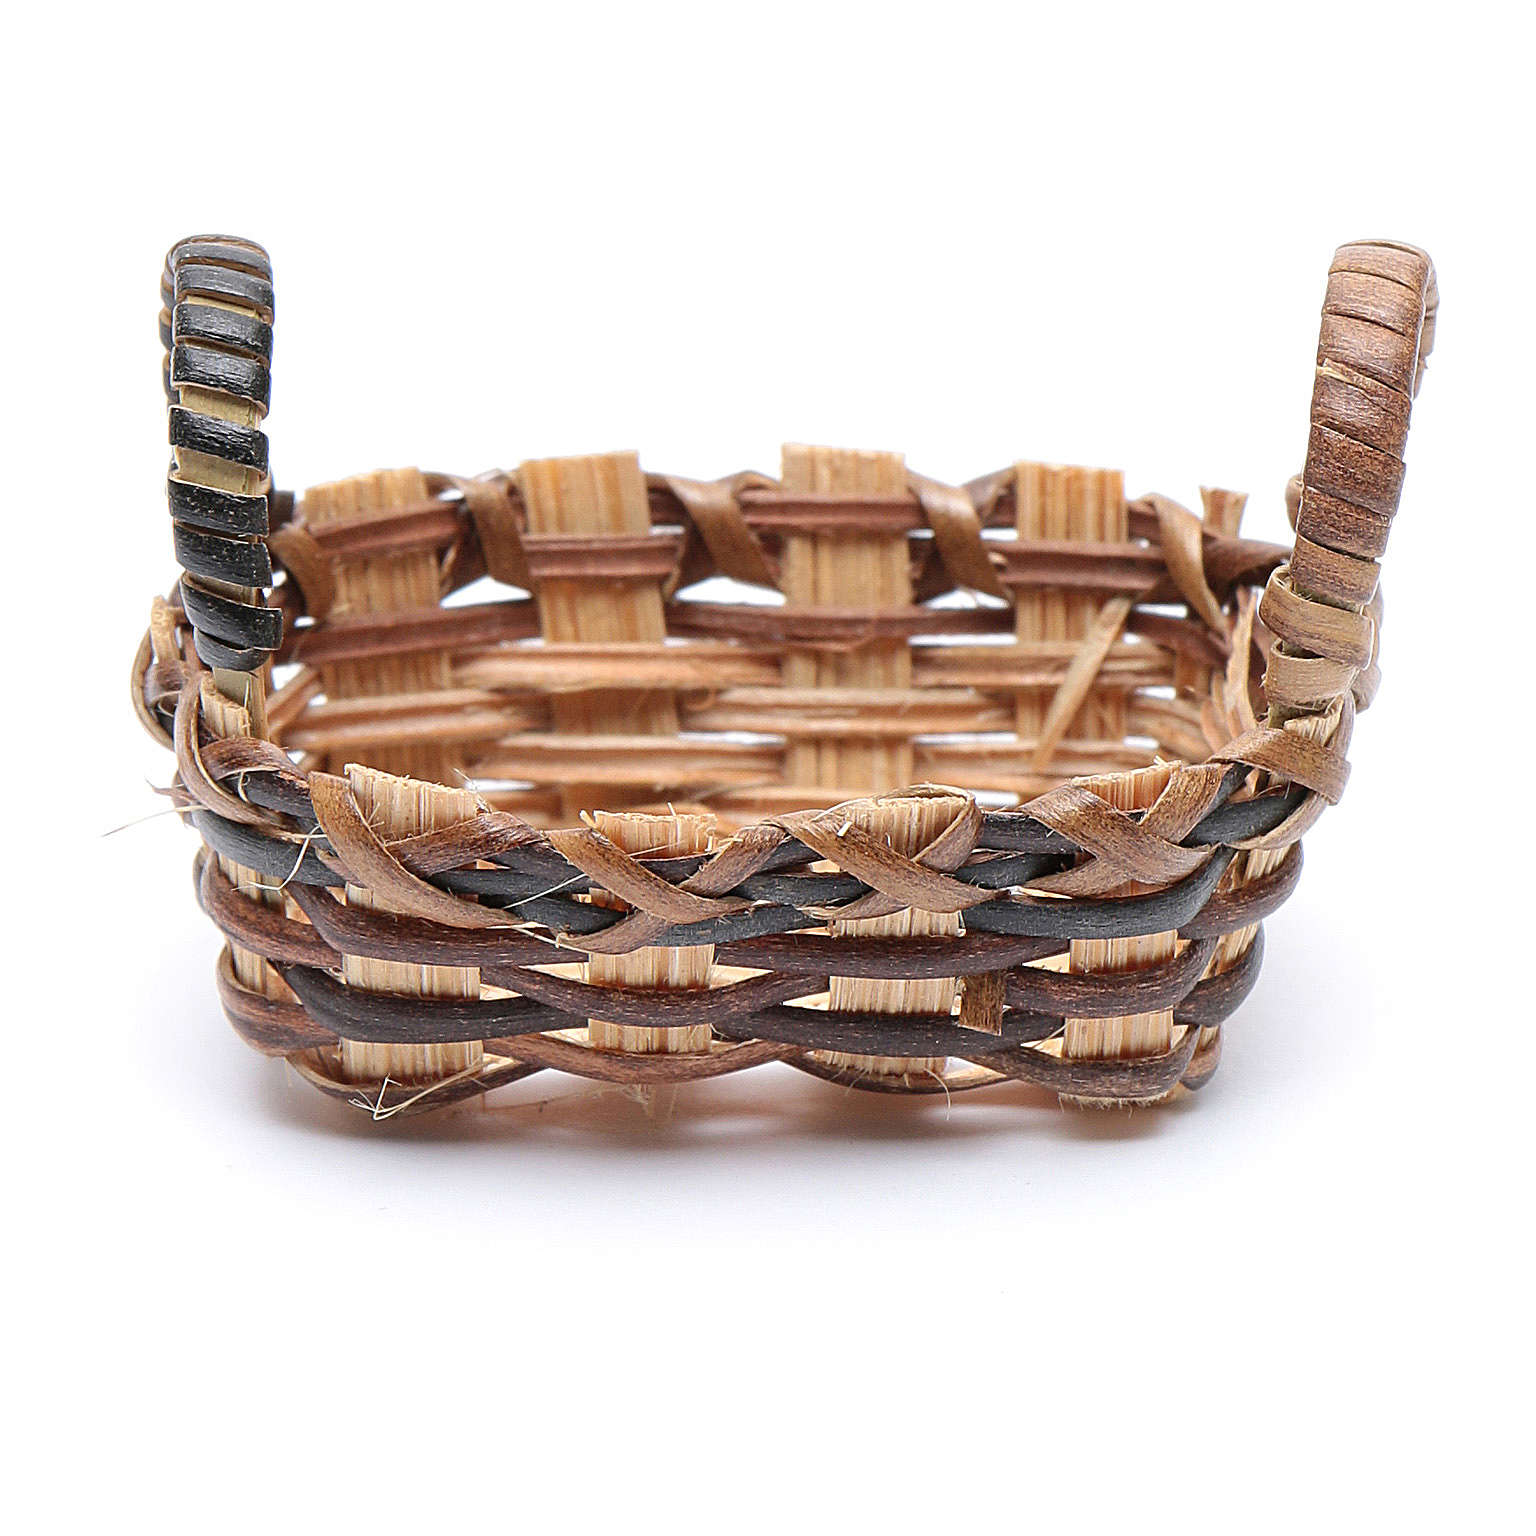 Nativity Wicker Basket for Clothes 3.5x4.5 cm 4